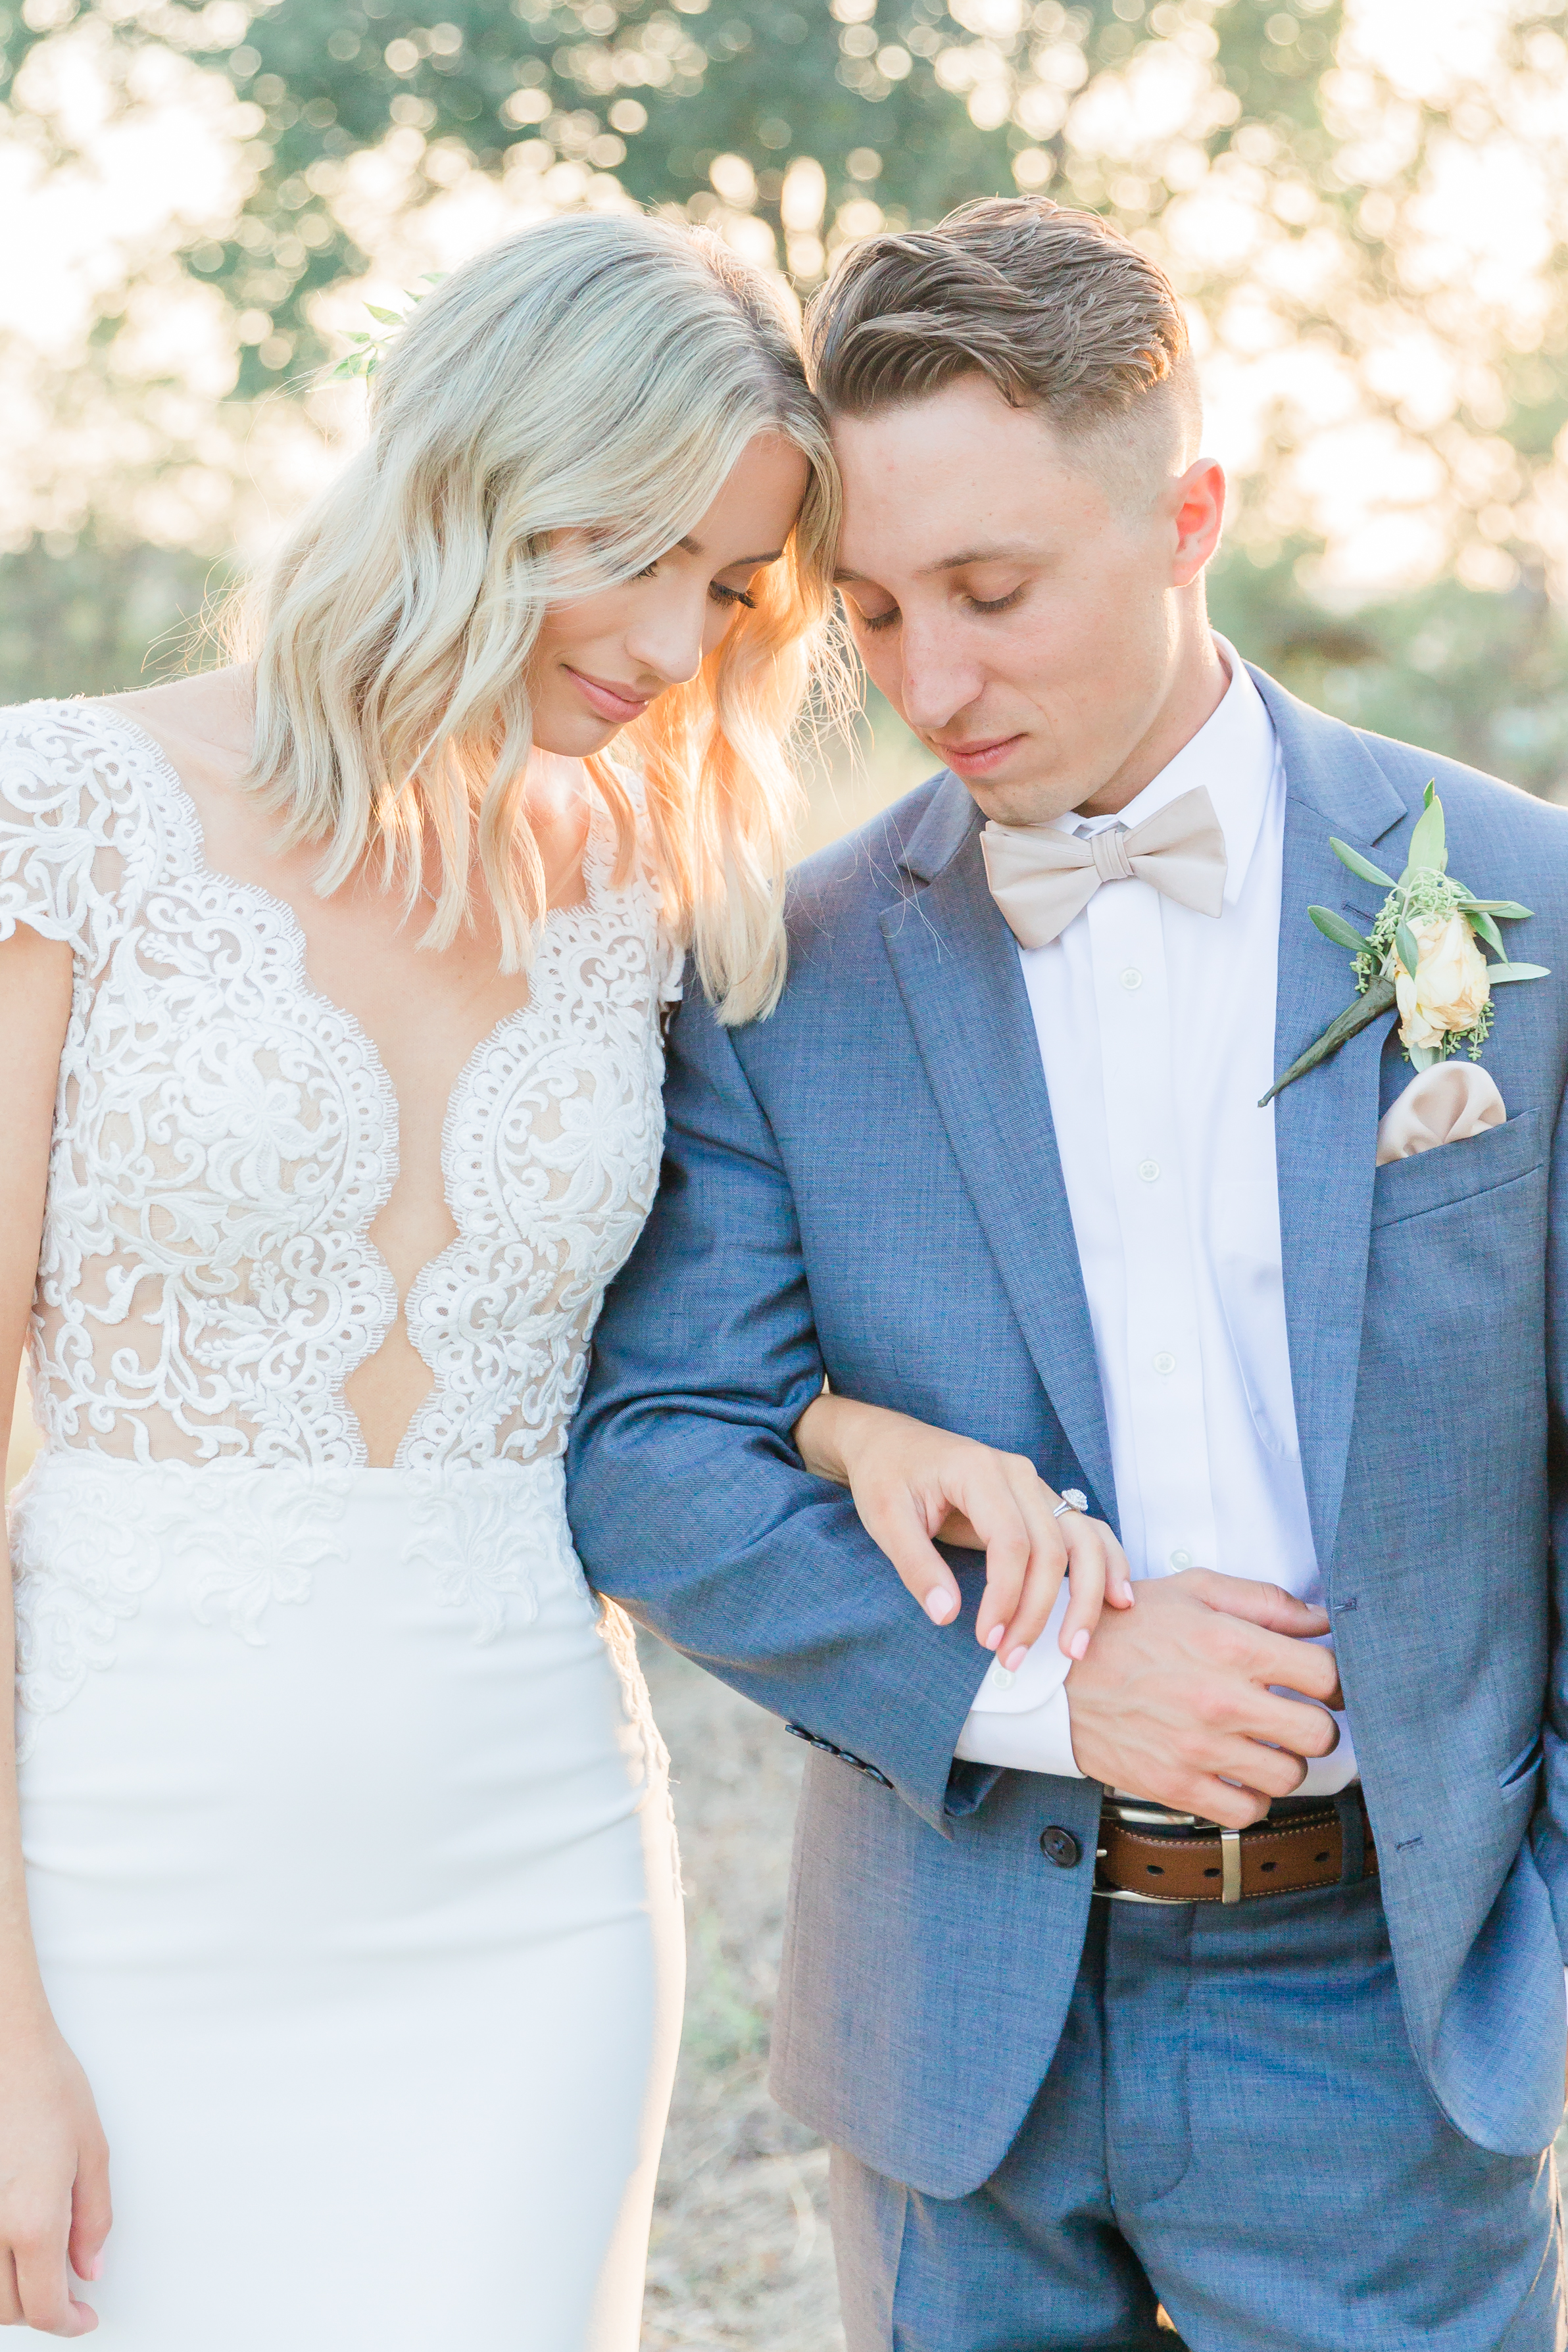 Kaitlynn and Colby - Married - Sneaks - Lauren Alisse Photography-99.jpg